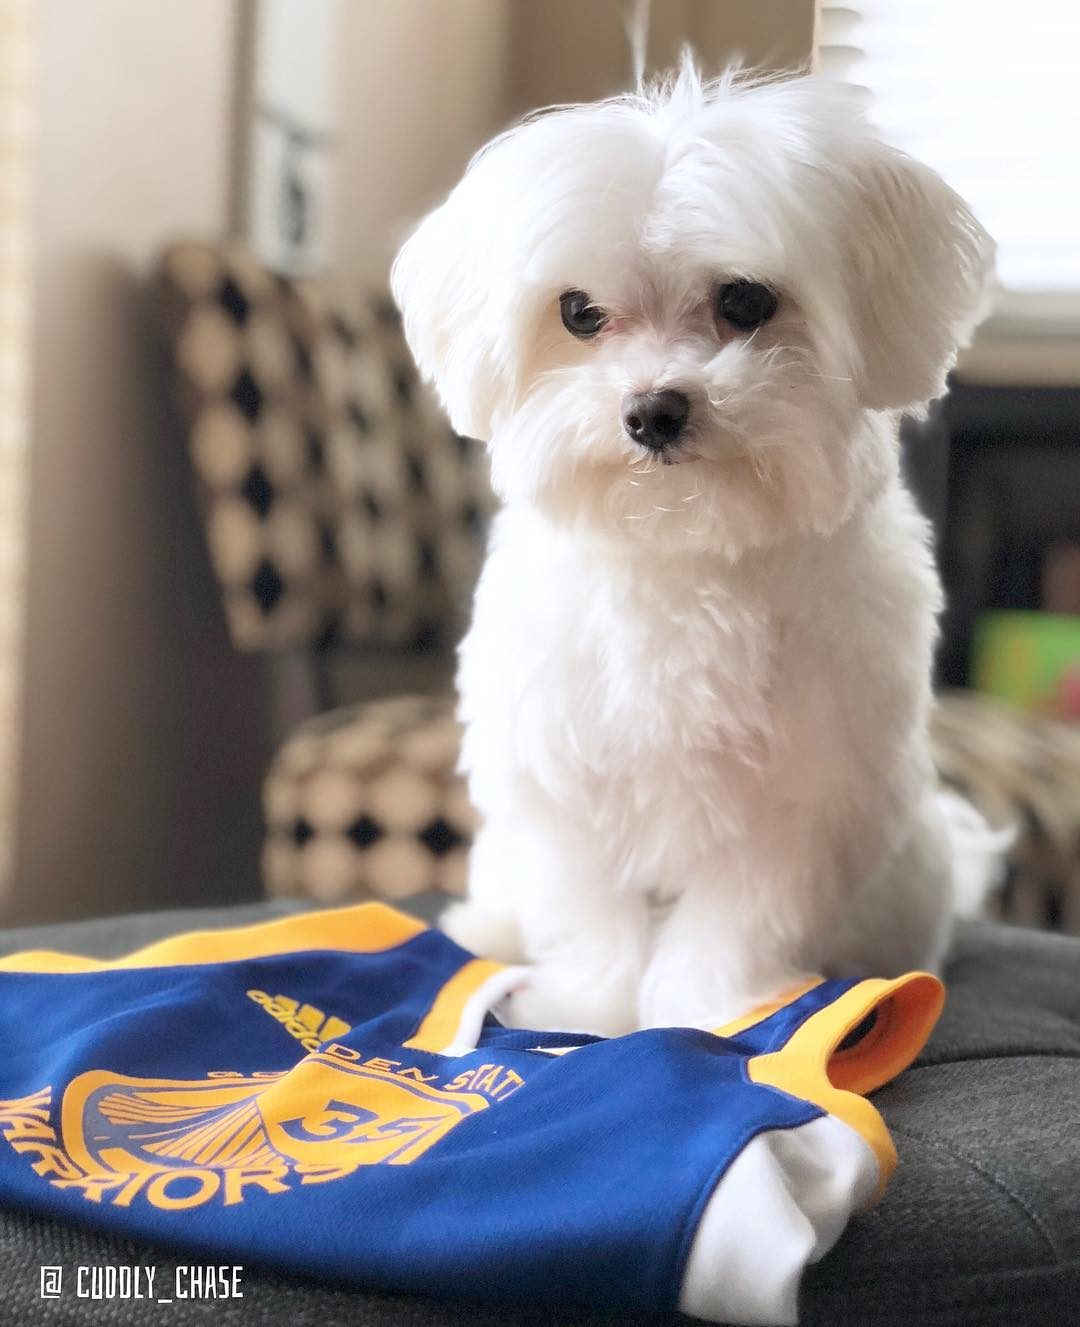 <div class='meta'><div class='origin-logo' data-origin='none'></div><span class='caption-text' data-credit='Photo submitted to KGO-TV by @cuddly_chase_Instagram'>Warriors fans show their spirit during the 2017-2018 season. Share your photos using #DubsOn7 and you may see them online or on TV!</span></div>